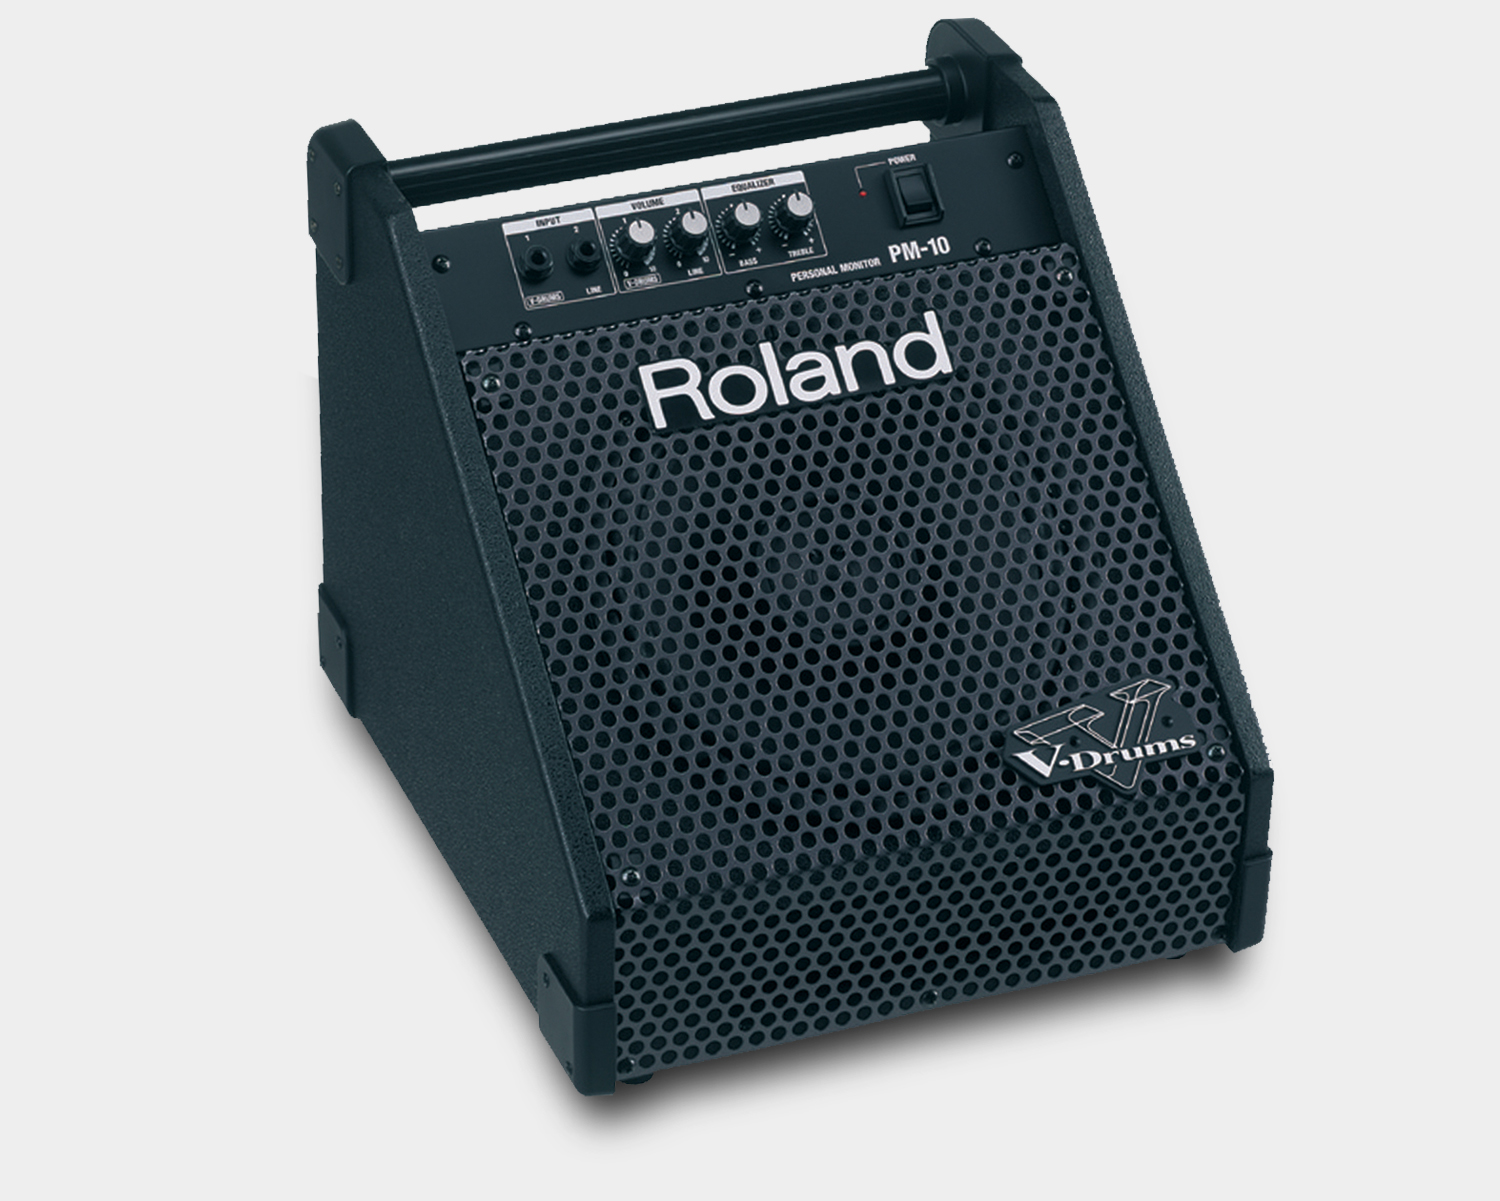 Roland E-Drum Monitor PM-10